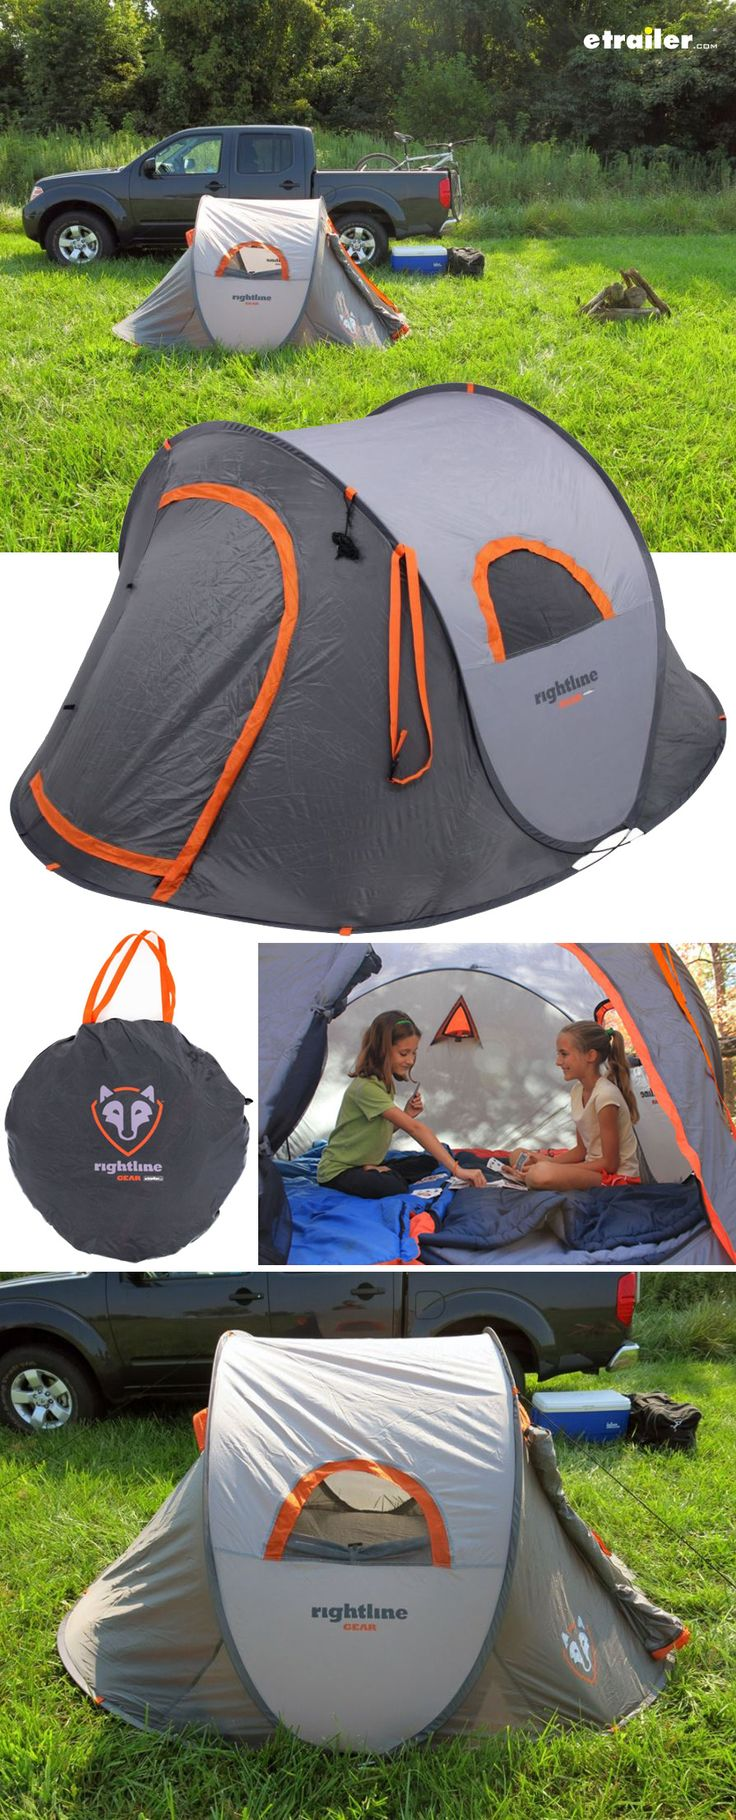 Rightline Pop-Up Tent - Sleeps 2 - 90  x 72  x 42  & 168 best Tents images on Pinterest | Tent camping Camping and ...